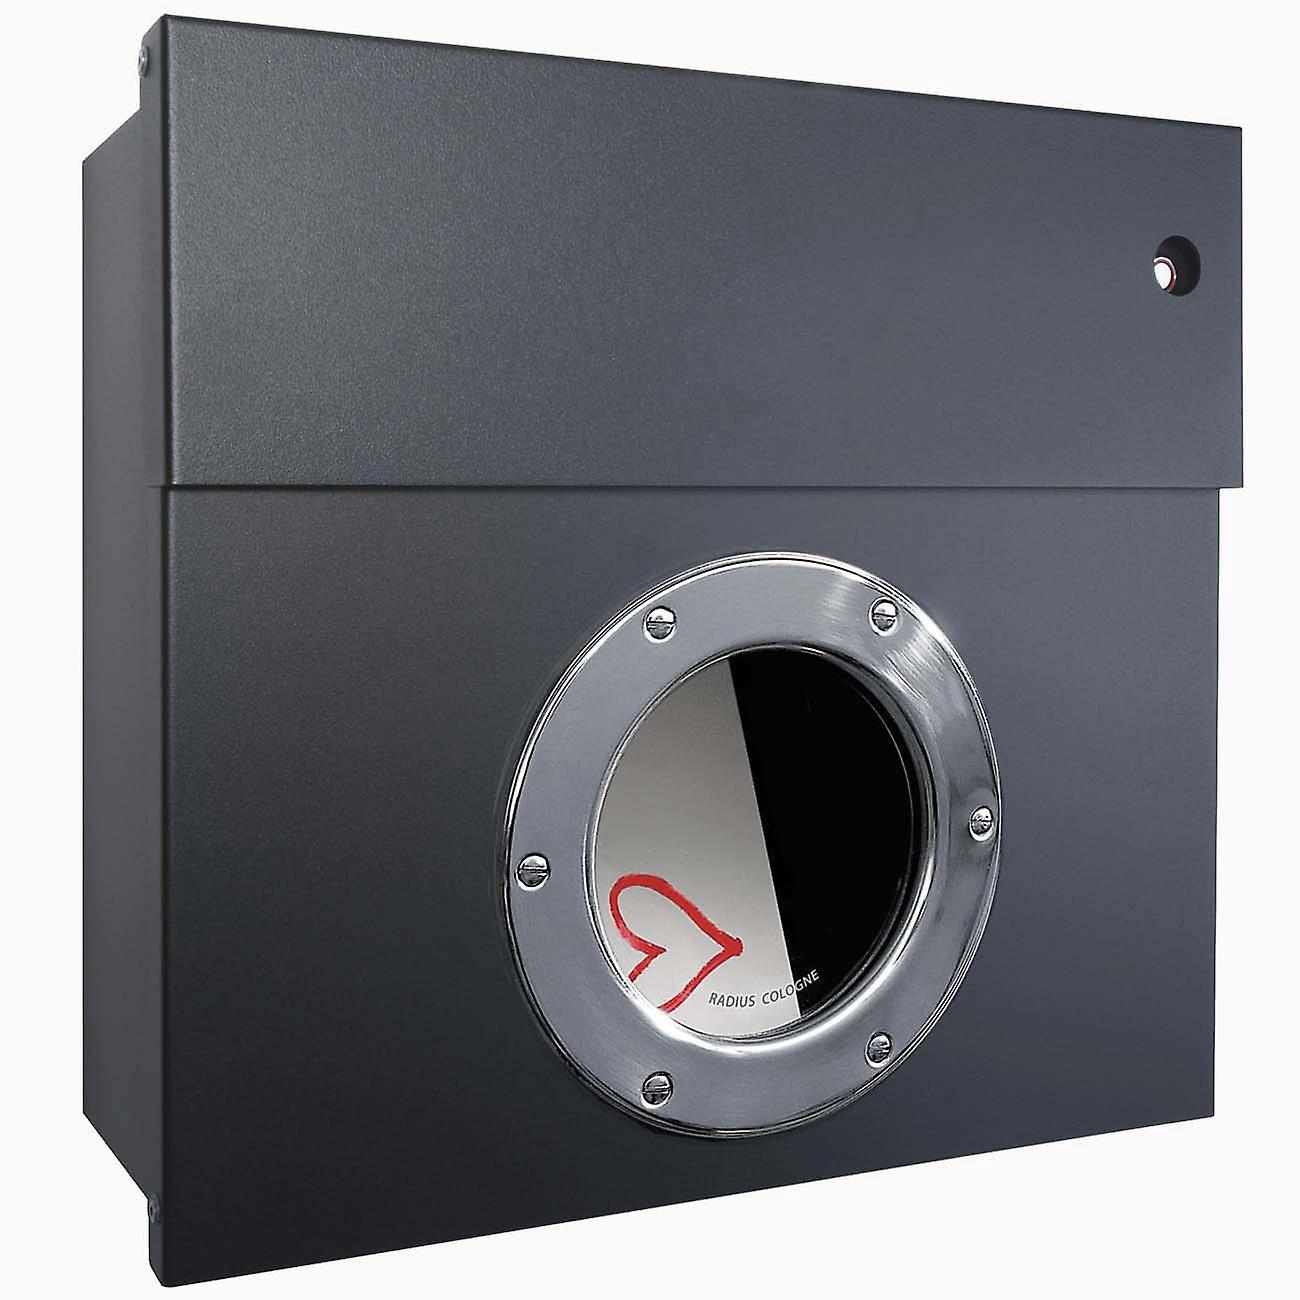 Anthrazit Grau Metallic Ral Radius White Letterbox Letterman 1 Anthracite Grey Ral 7016 With Led Ring 506 G Kw